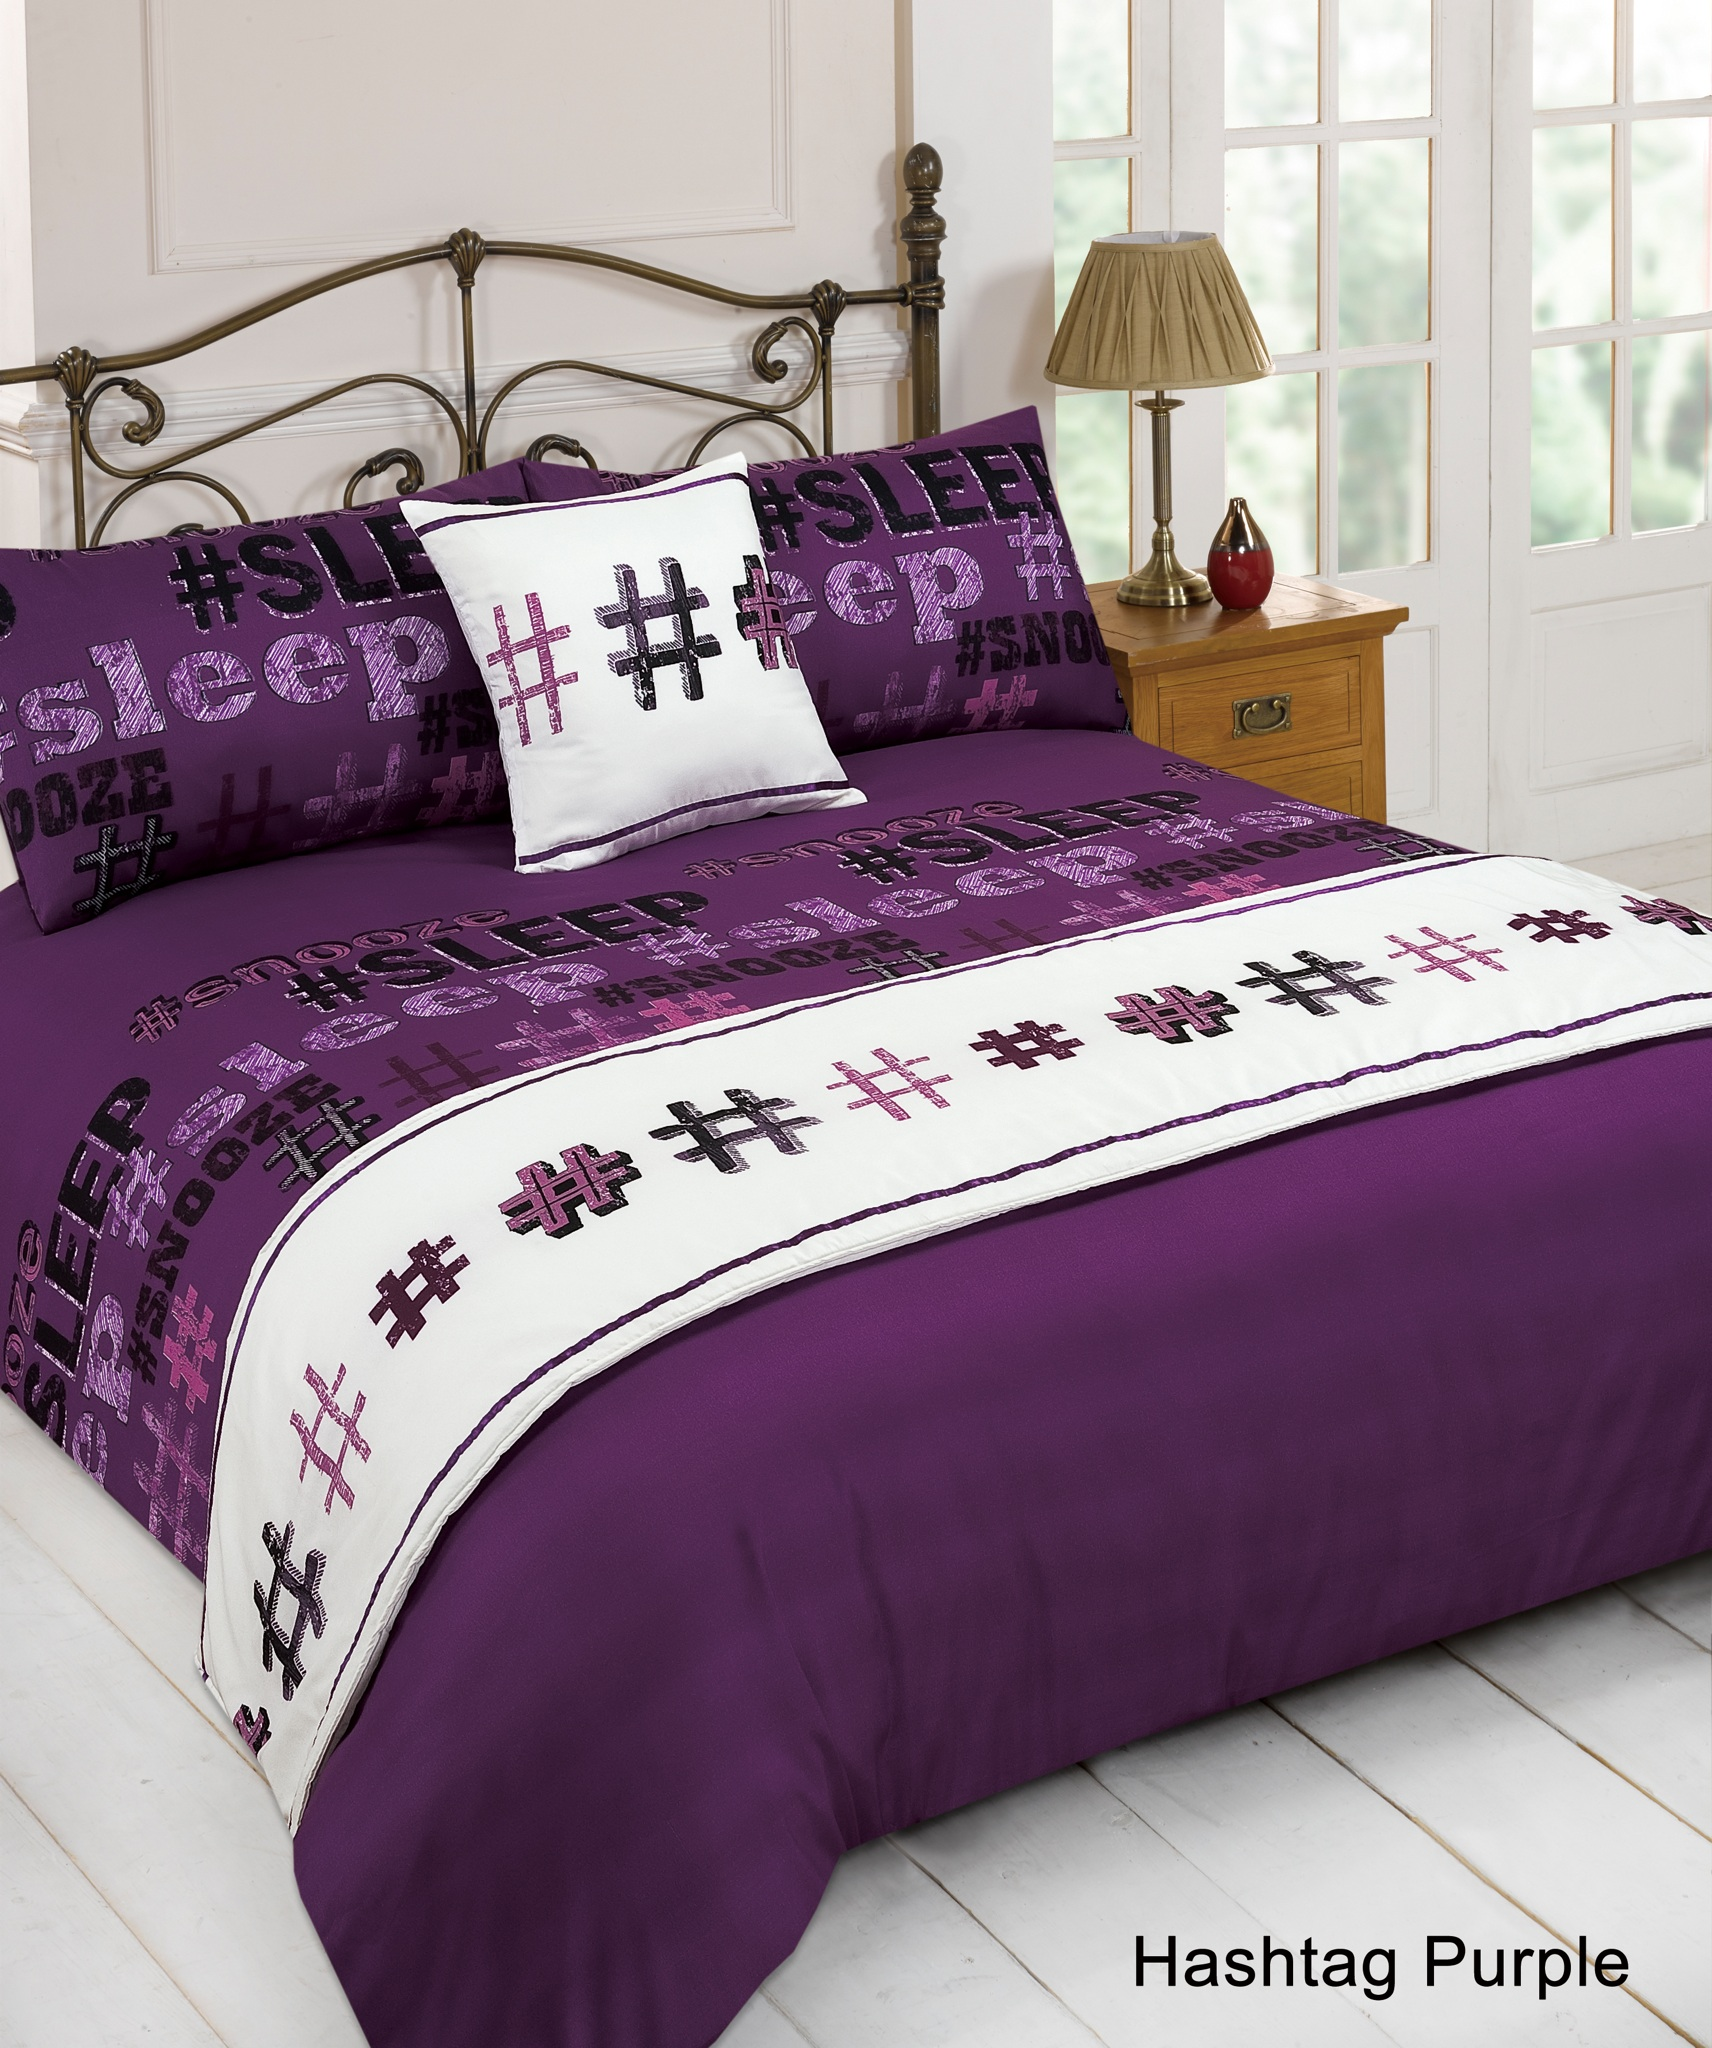 Looking for Bedding and Bedding Sets - King & Duvet Covers? Explore our selection of Bedding and Bedding Sets King & Duvet Covers on Bedding and Bedding Sets at Hayneedle. Bed Sheets Bed Pillows Down Comforters Pillow Shams Mattresses. Bath Accessories. Size: 7 available (+ Set Size) Free Shipping. #WOOR Added to Favorites. Removed.